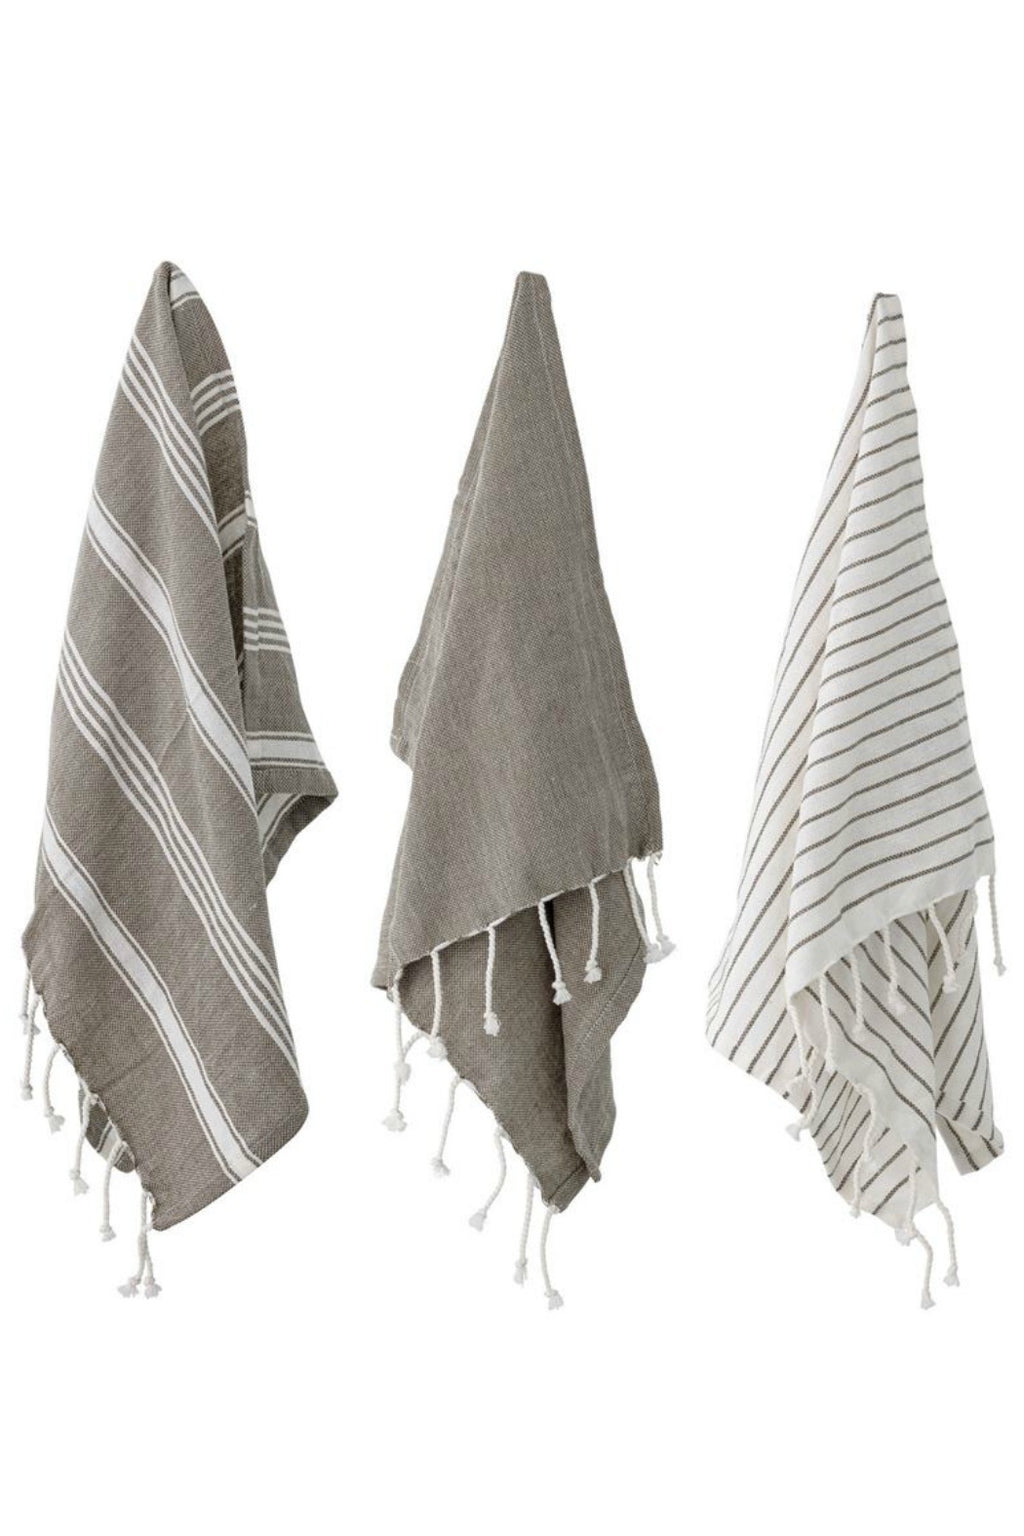 Bloomingville Woven Cotton Tassel Tea Towels